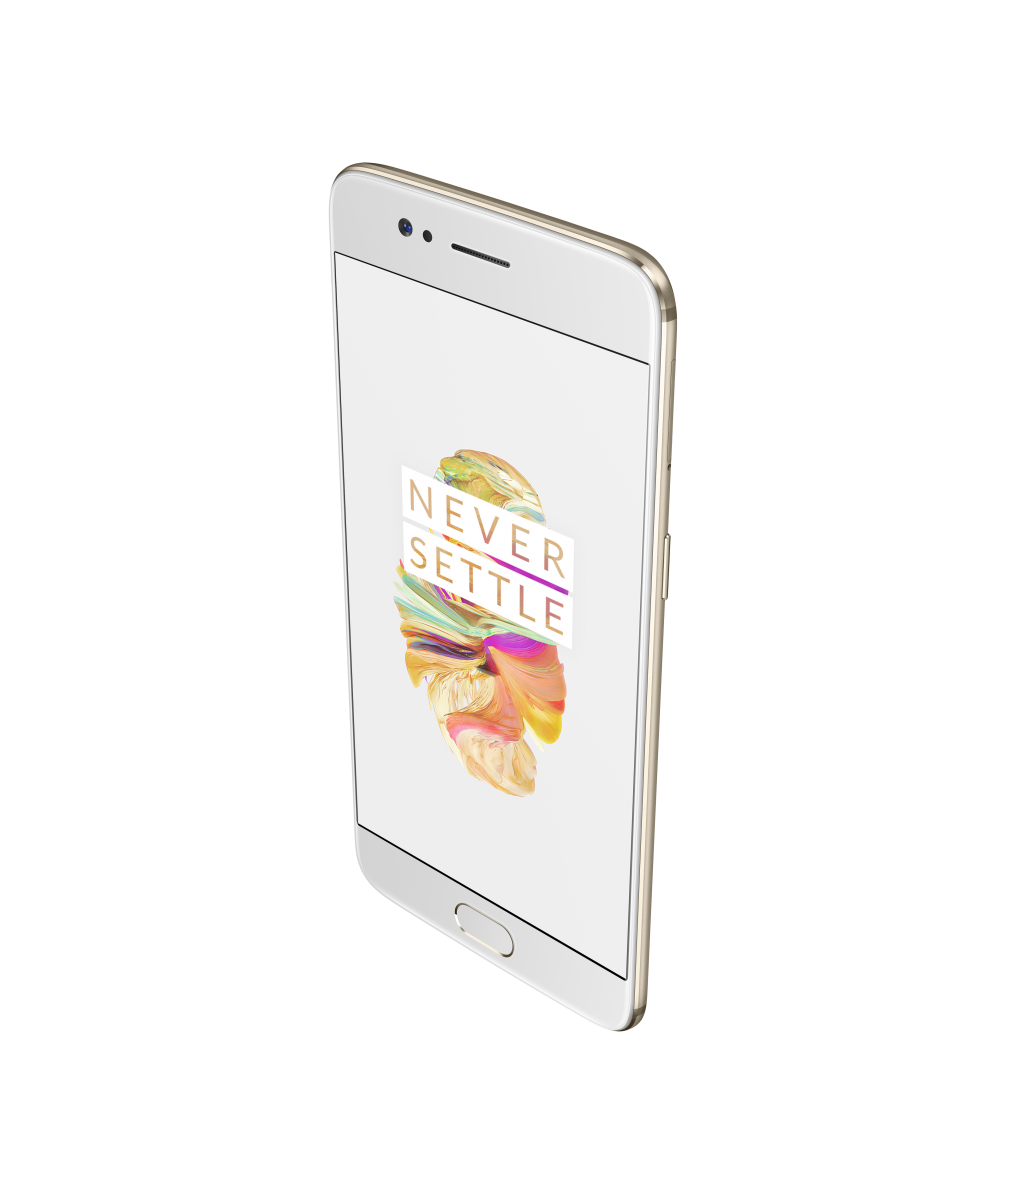 OnePlus Launches OnePlus 5 Soft Gold Limited Edition In India